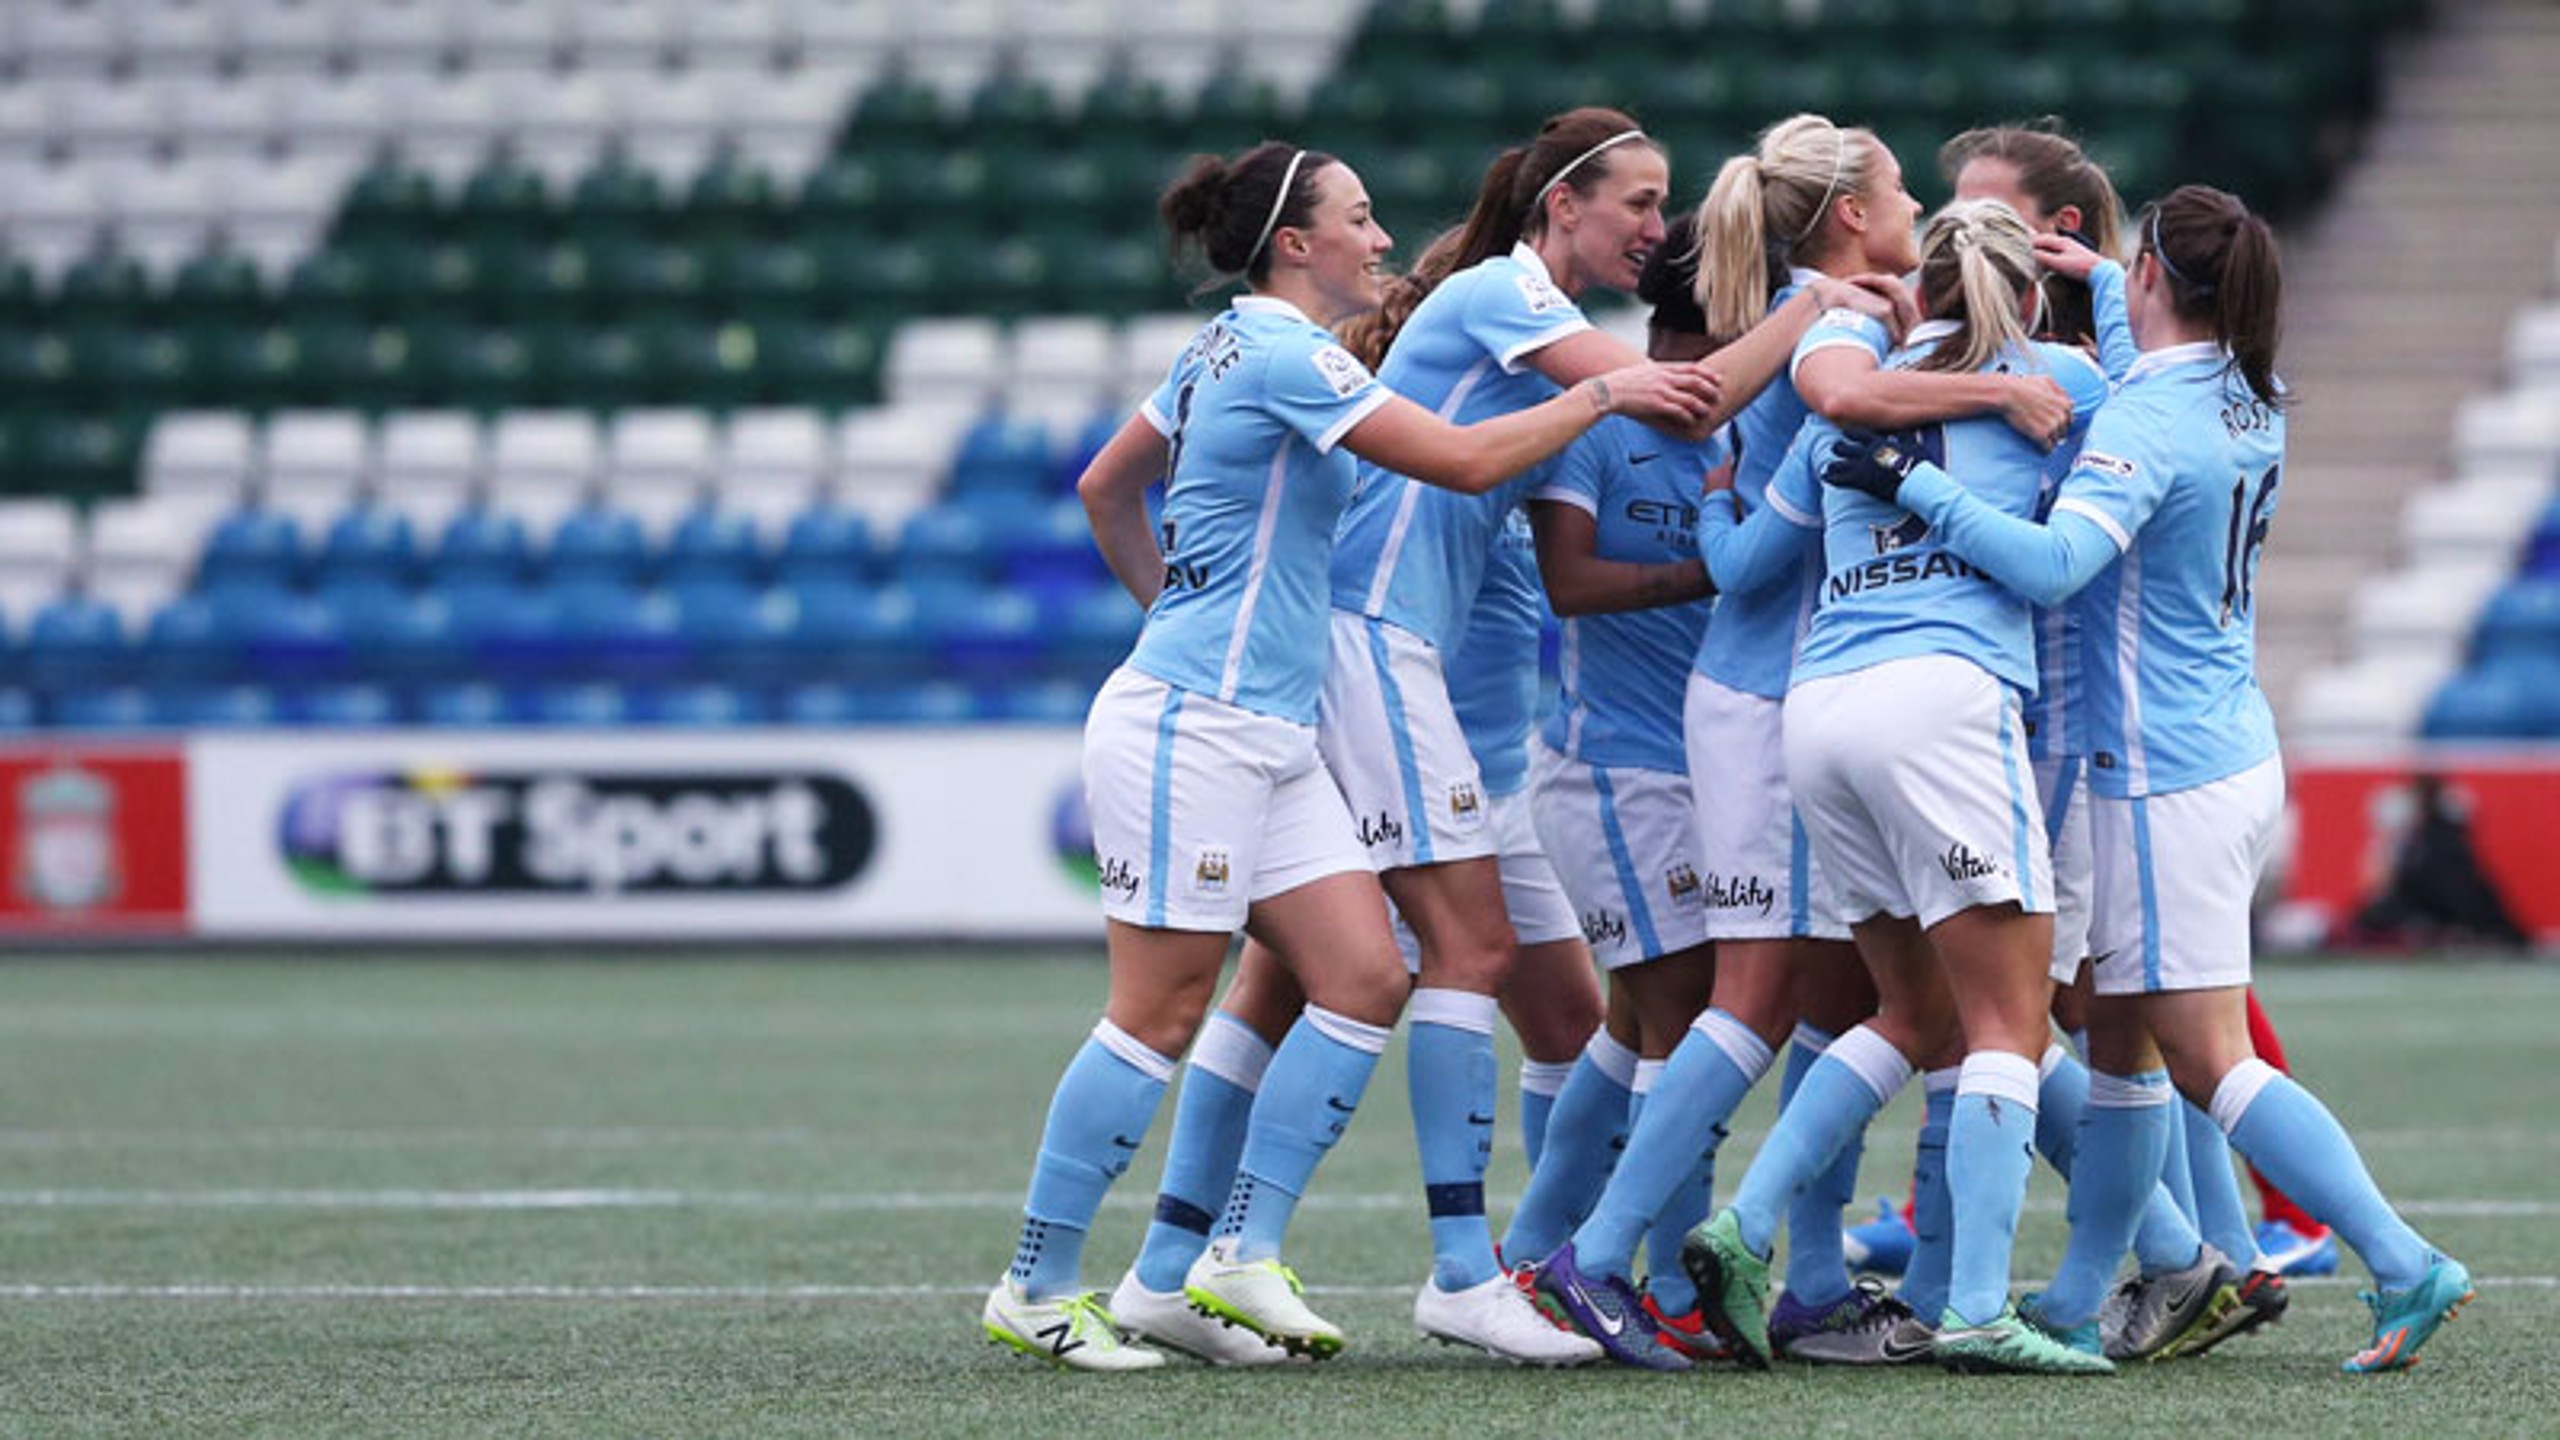 CUP OF CHEER: City players celebrate